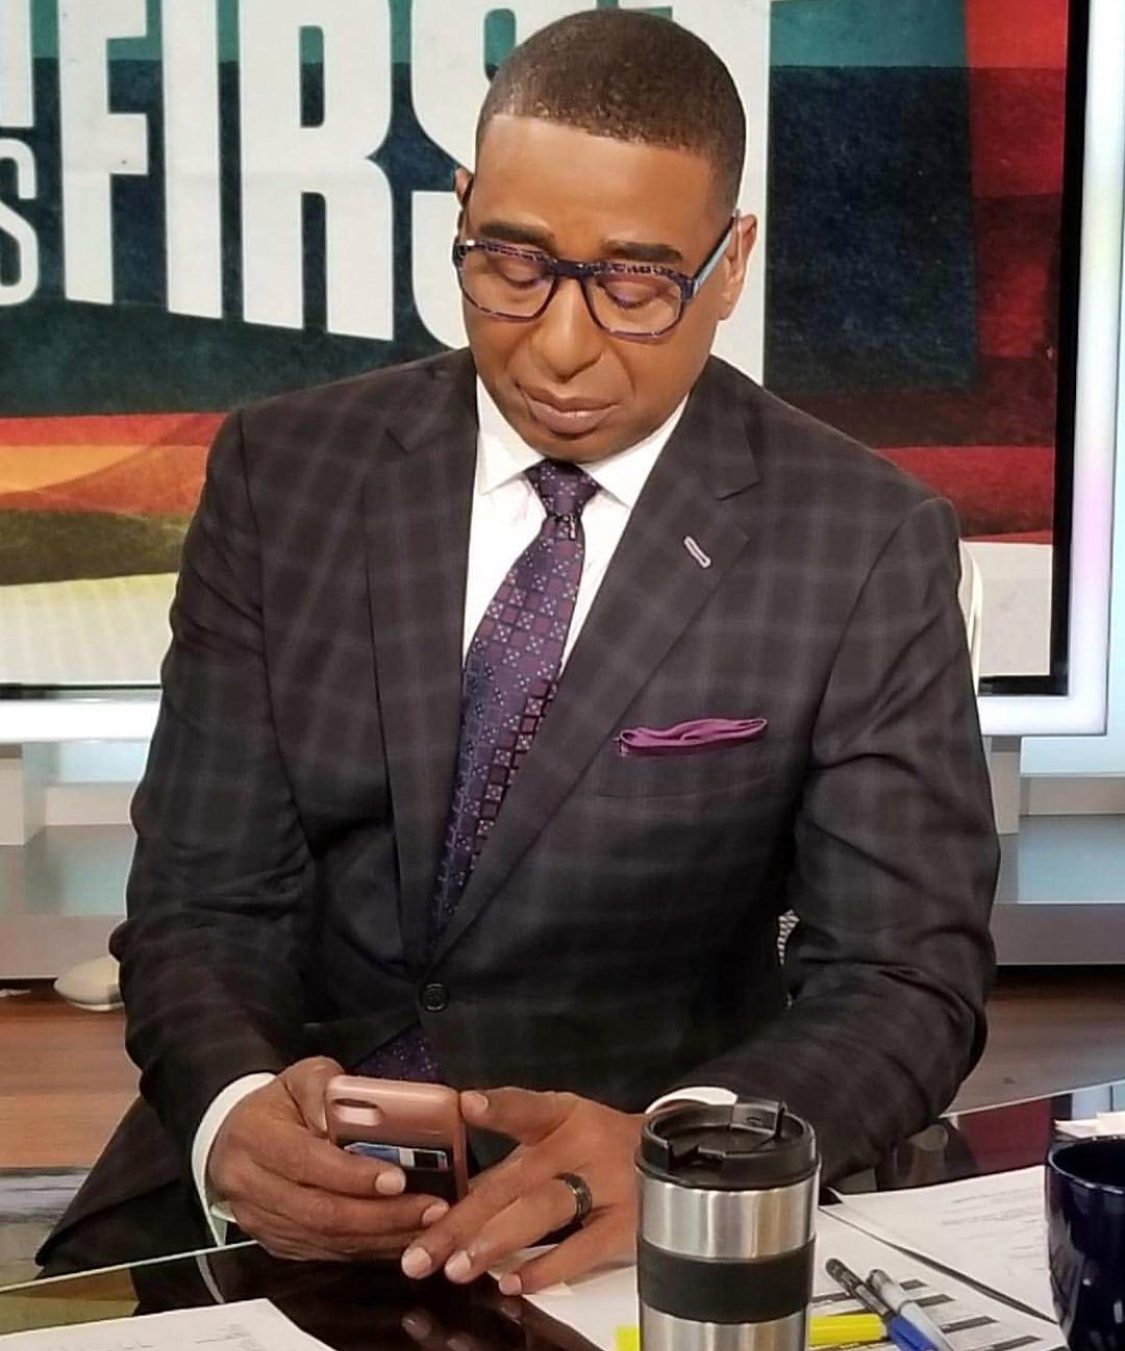 Cris Carter - First Things First